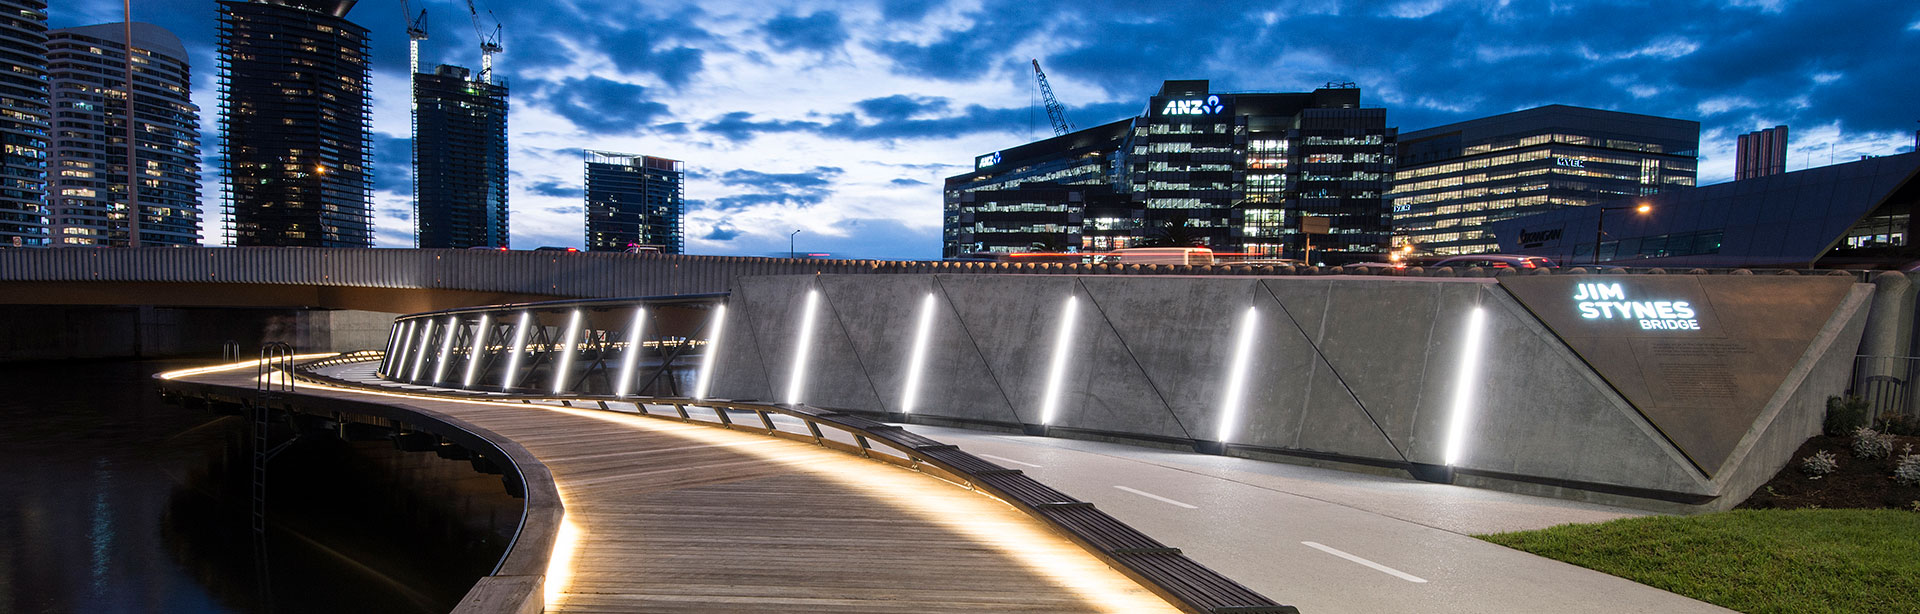 Primofeatures 240mm divisible length segments, allowing you to customise the ideal length for your cove lighting project. Primo features onboard dimming and thermal management.